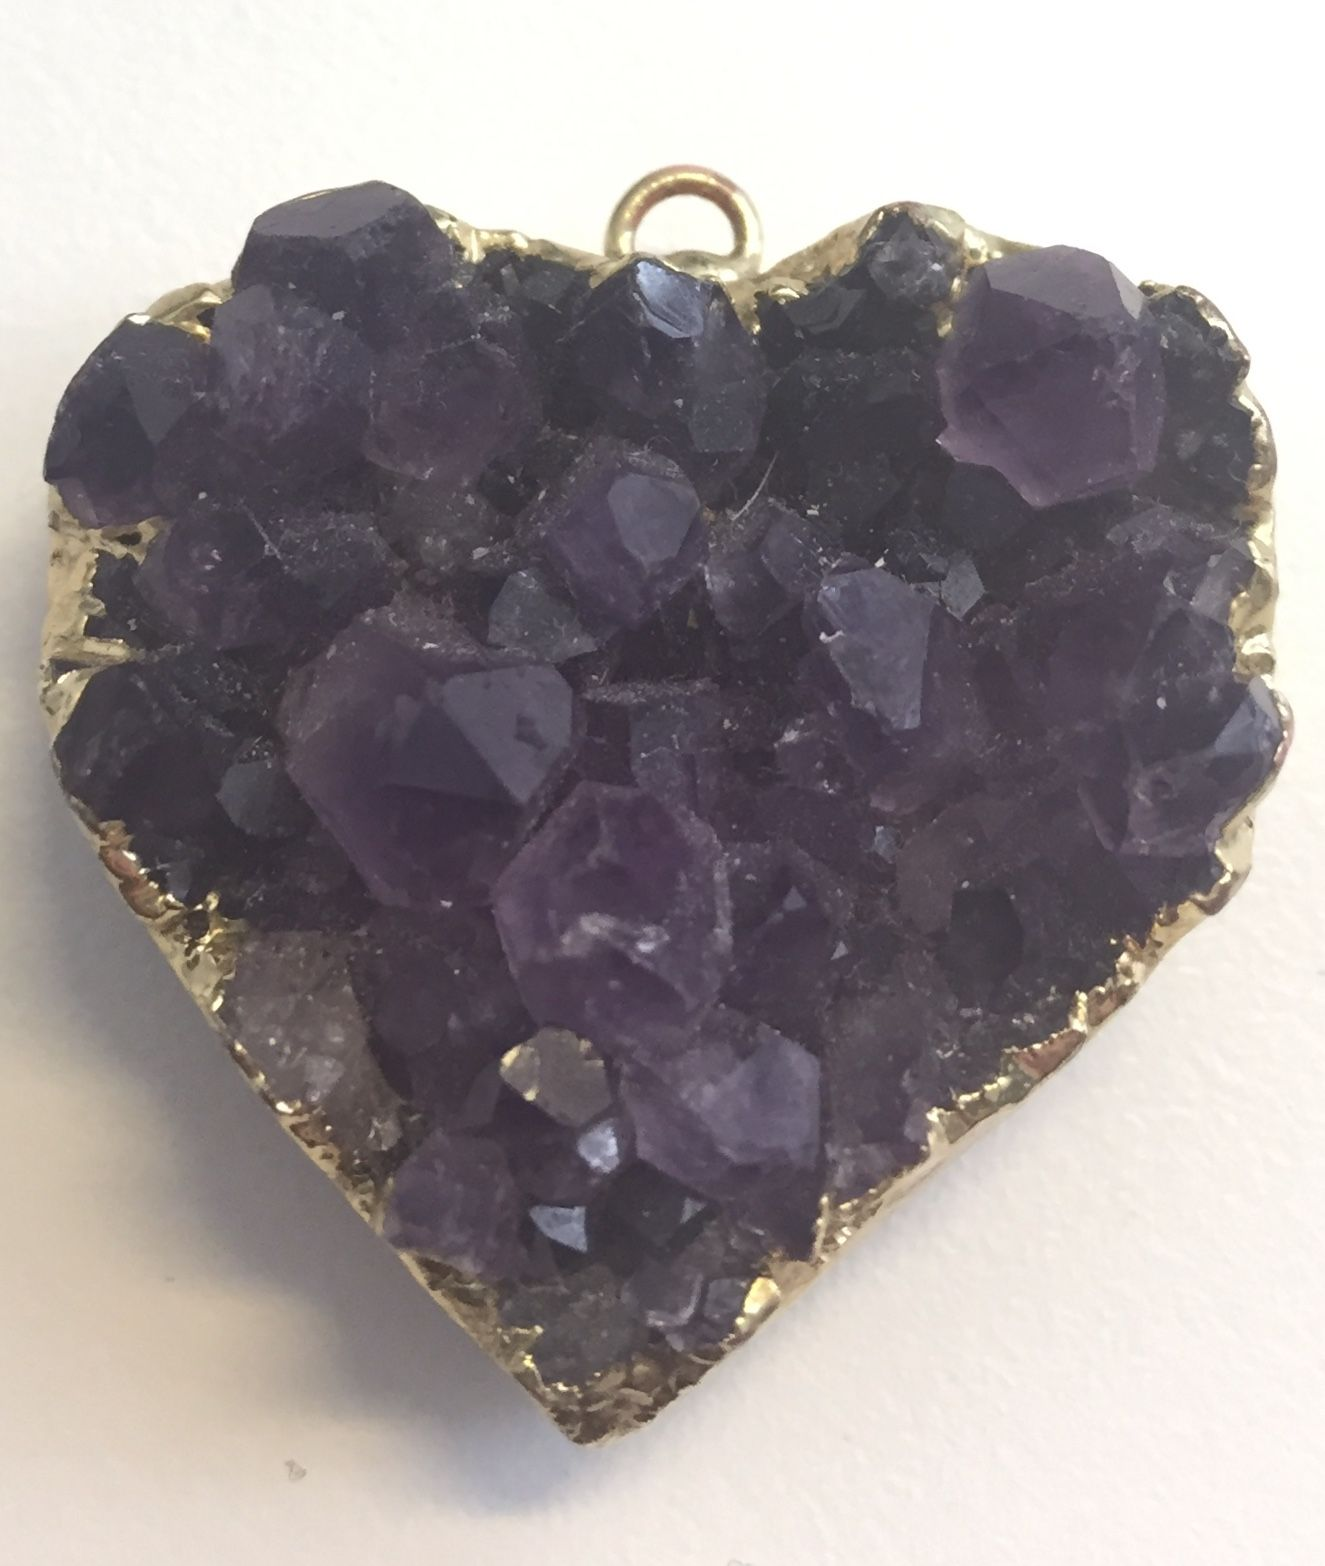 amathyst heart from my love Crystal vibes, Beautiful